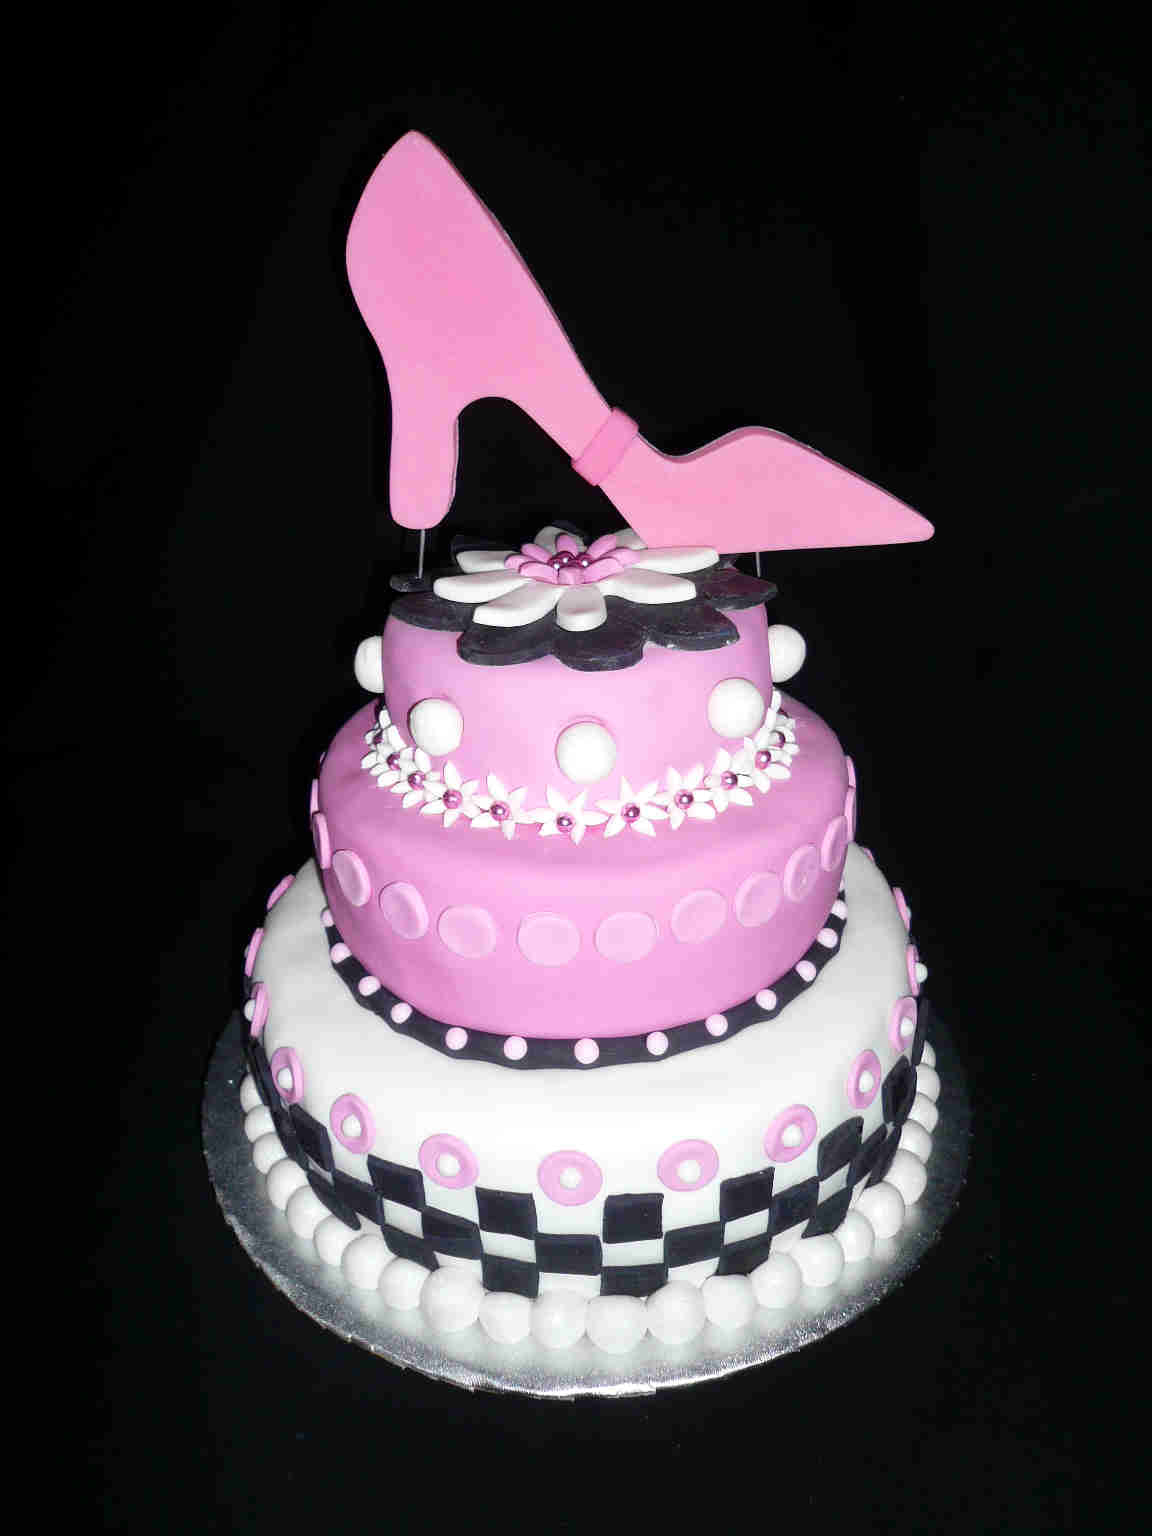 Awesome Happy Birthday Shoe Cake 12 Special Birthday Cakes With Shoes Personalised Birthday Cards Petedlily Jamesorg